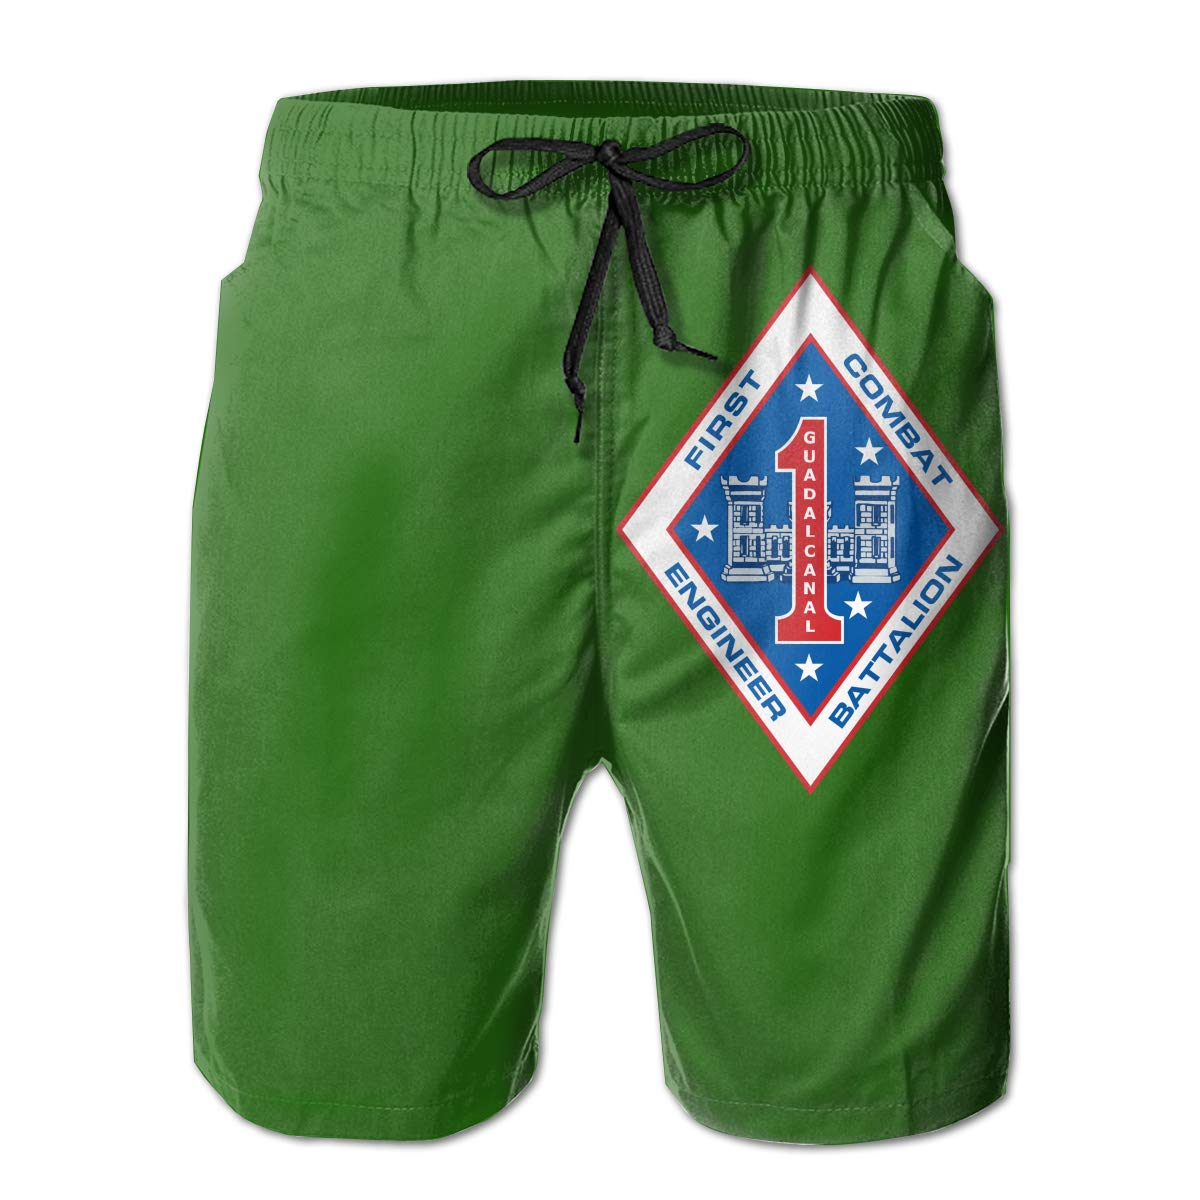 Hdecrr FFRE 1st Combat Engineer Battalion Men Summer Casual Beach Shorts Quick Dry Swim Trunks with Pockets